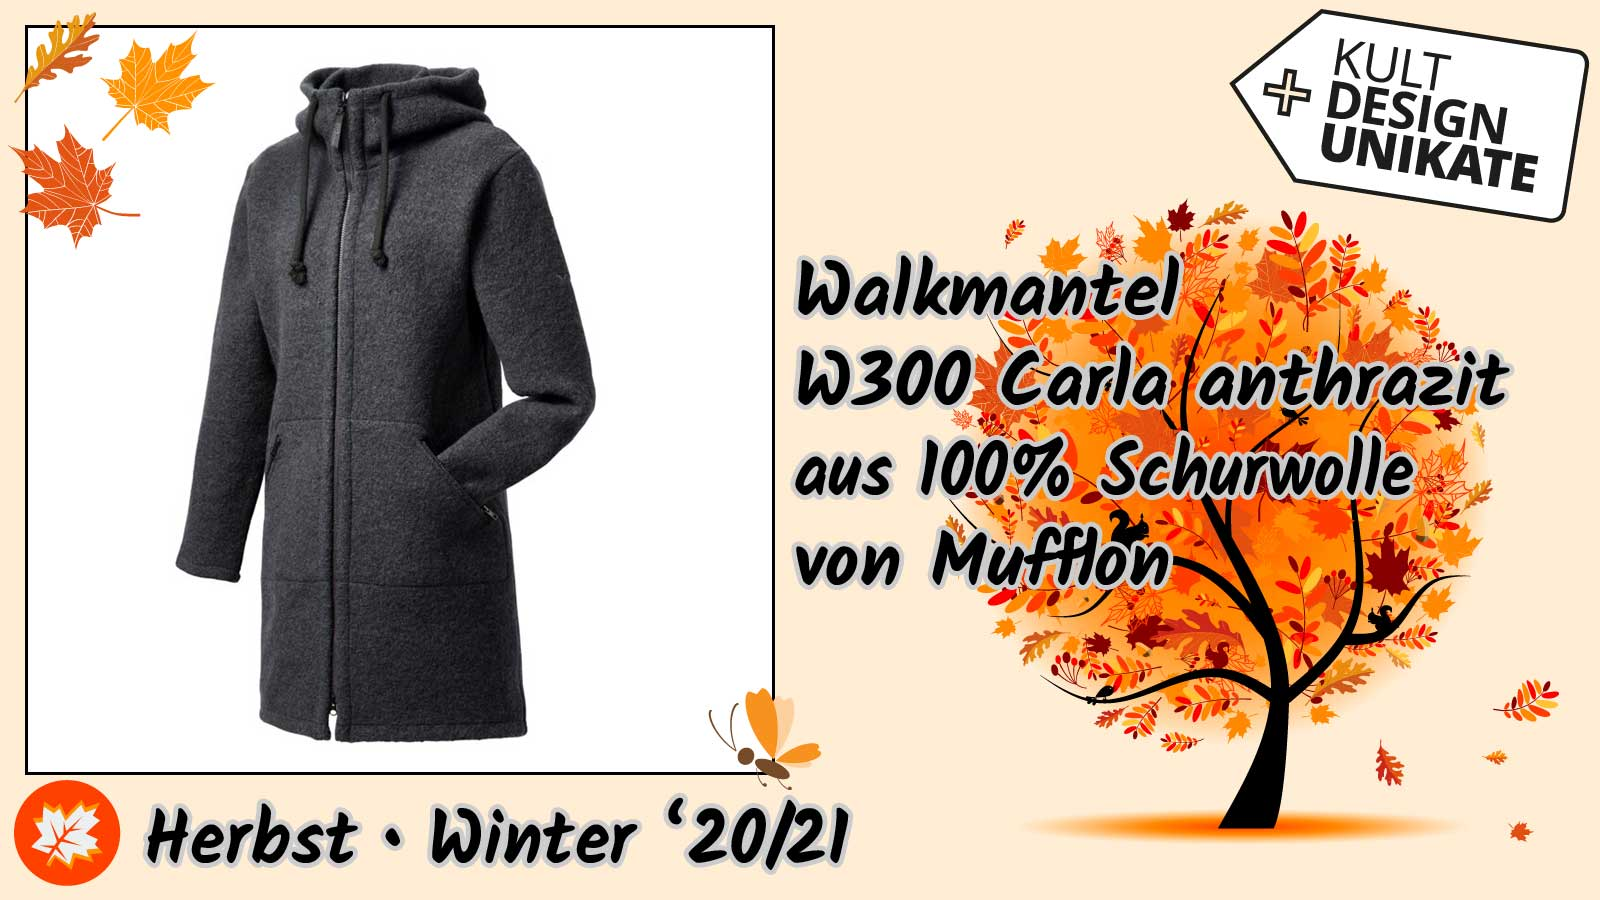 Mufflon-Walkmantel-W300-Carla-anthrazit